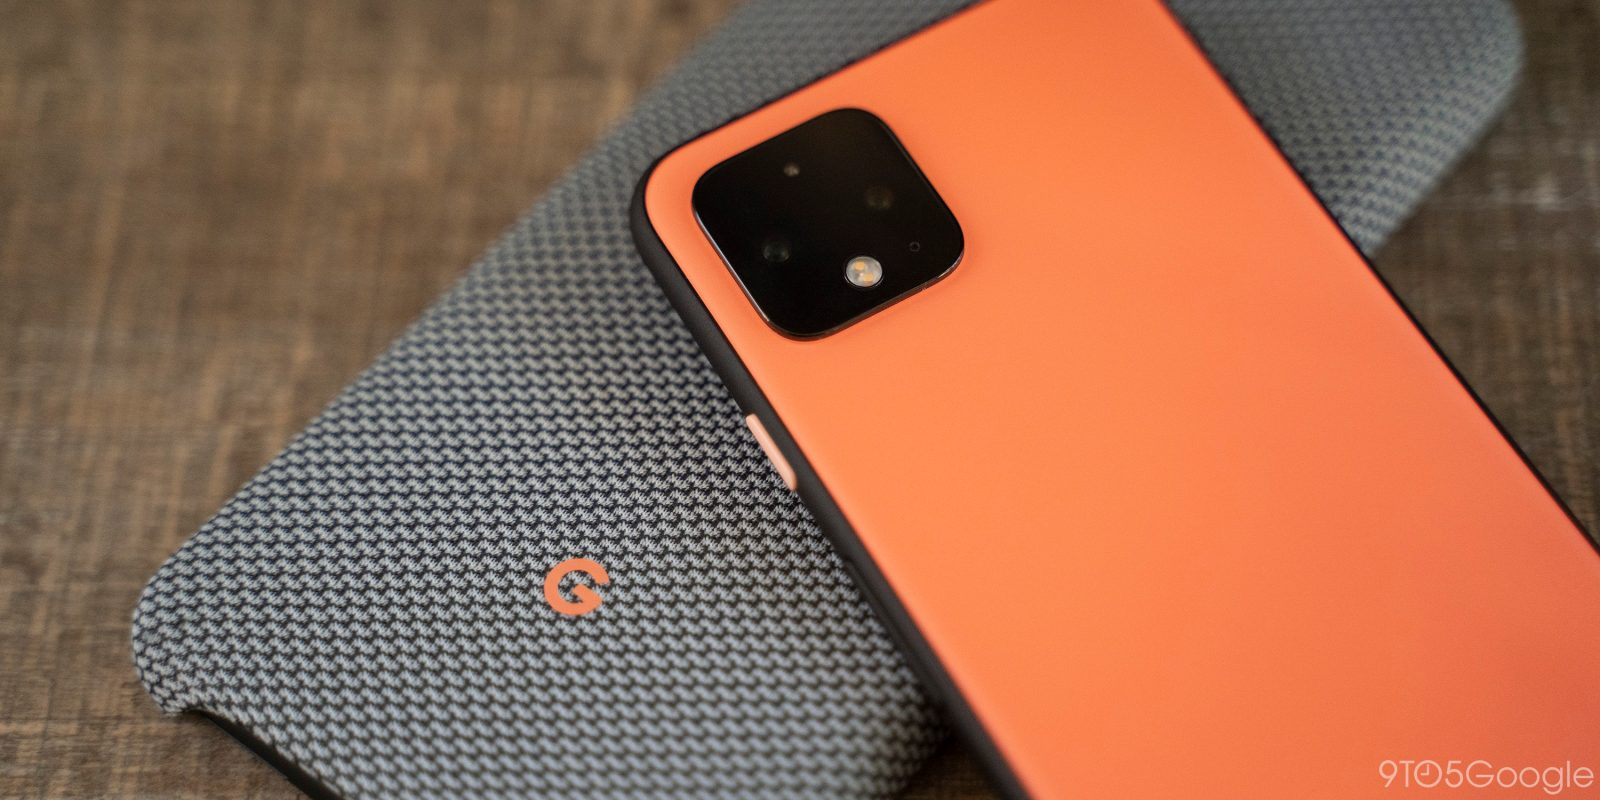 $100 Google Store credit for pre-ordering Pixel 4 now available